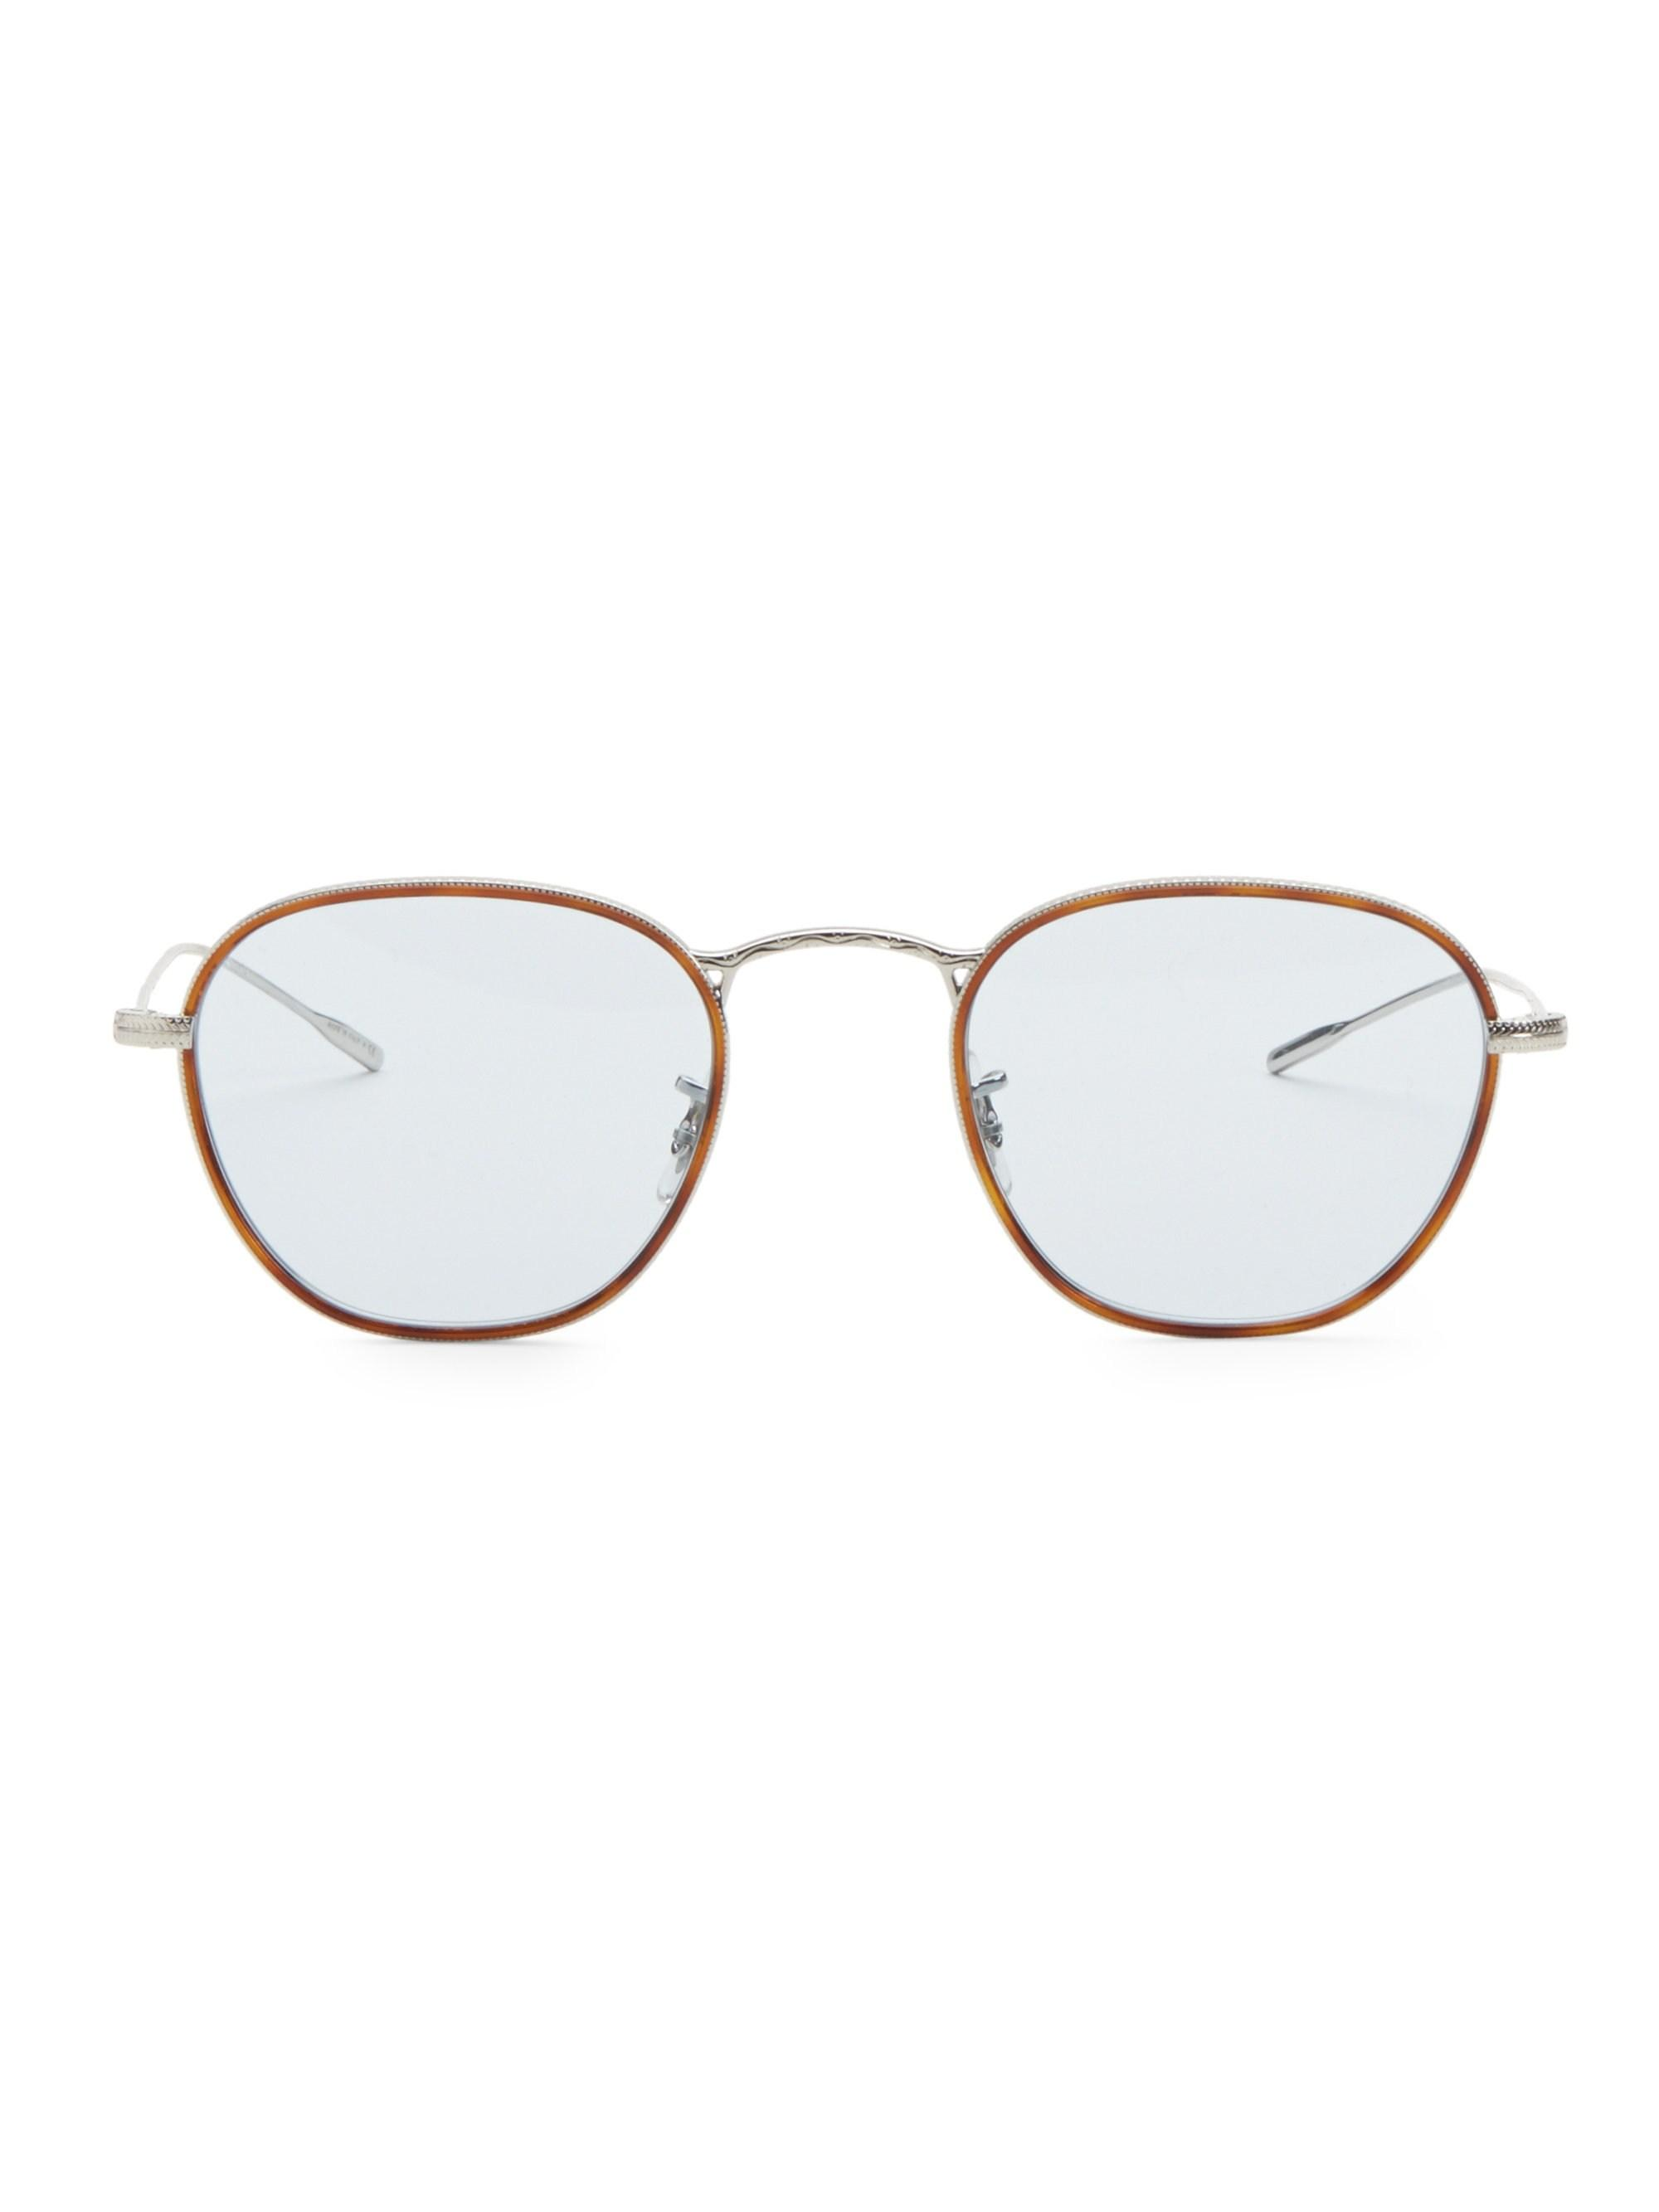 3b108f090680 Lyst - Oliver Peoples Eoin 48mm Optical Glasses in Metallic for Men